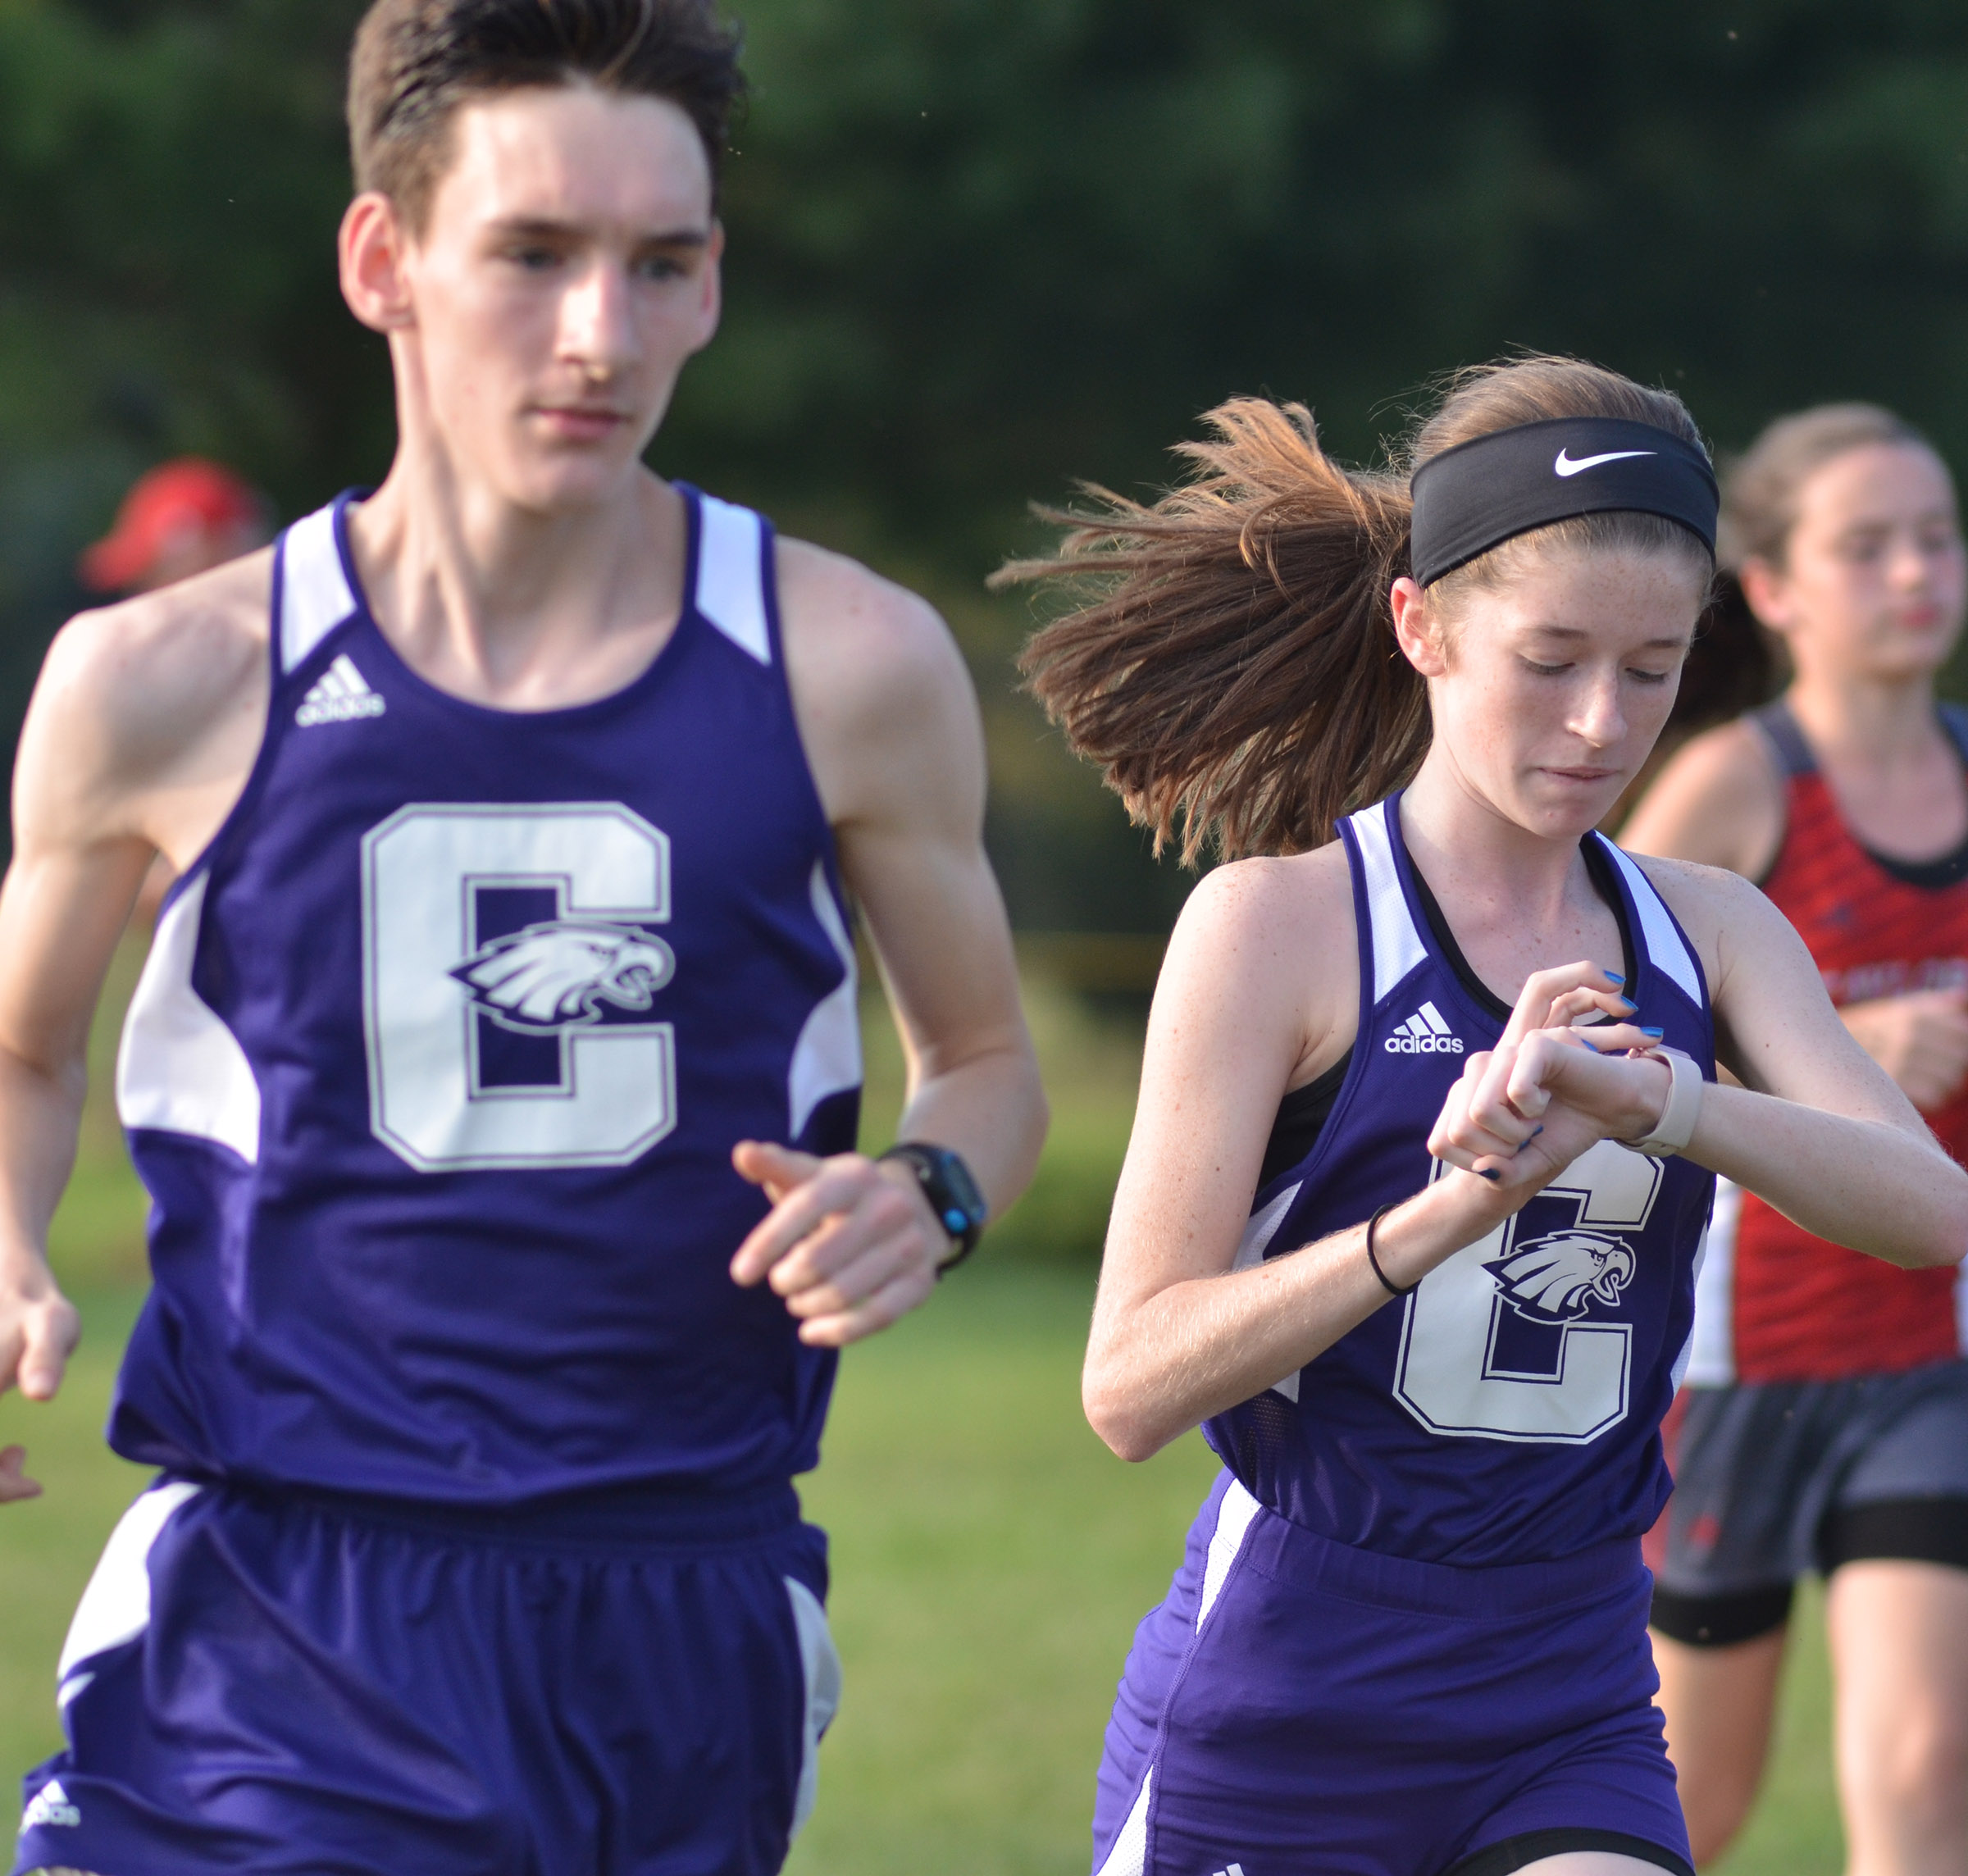 CHS sophomore Gracyne Hash sets a timer as she begins the race. At left is junior Ian McAninch.